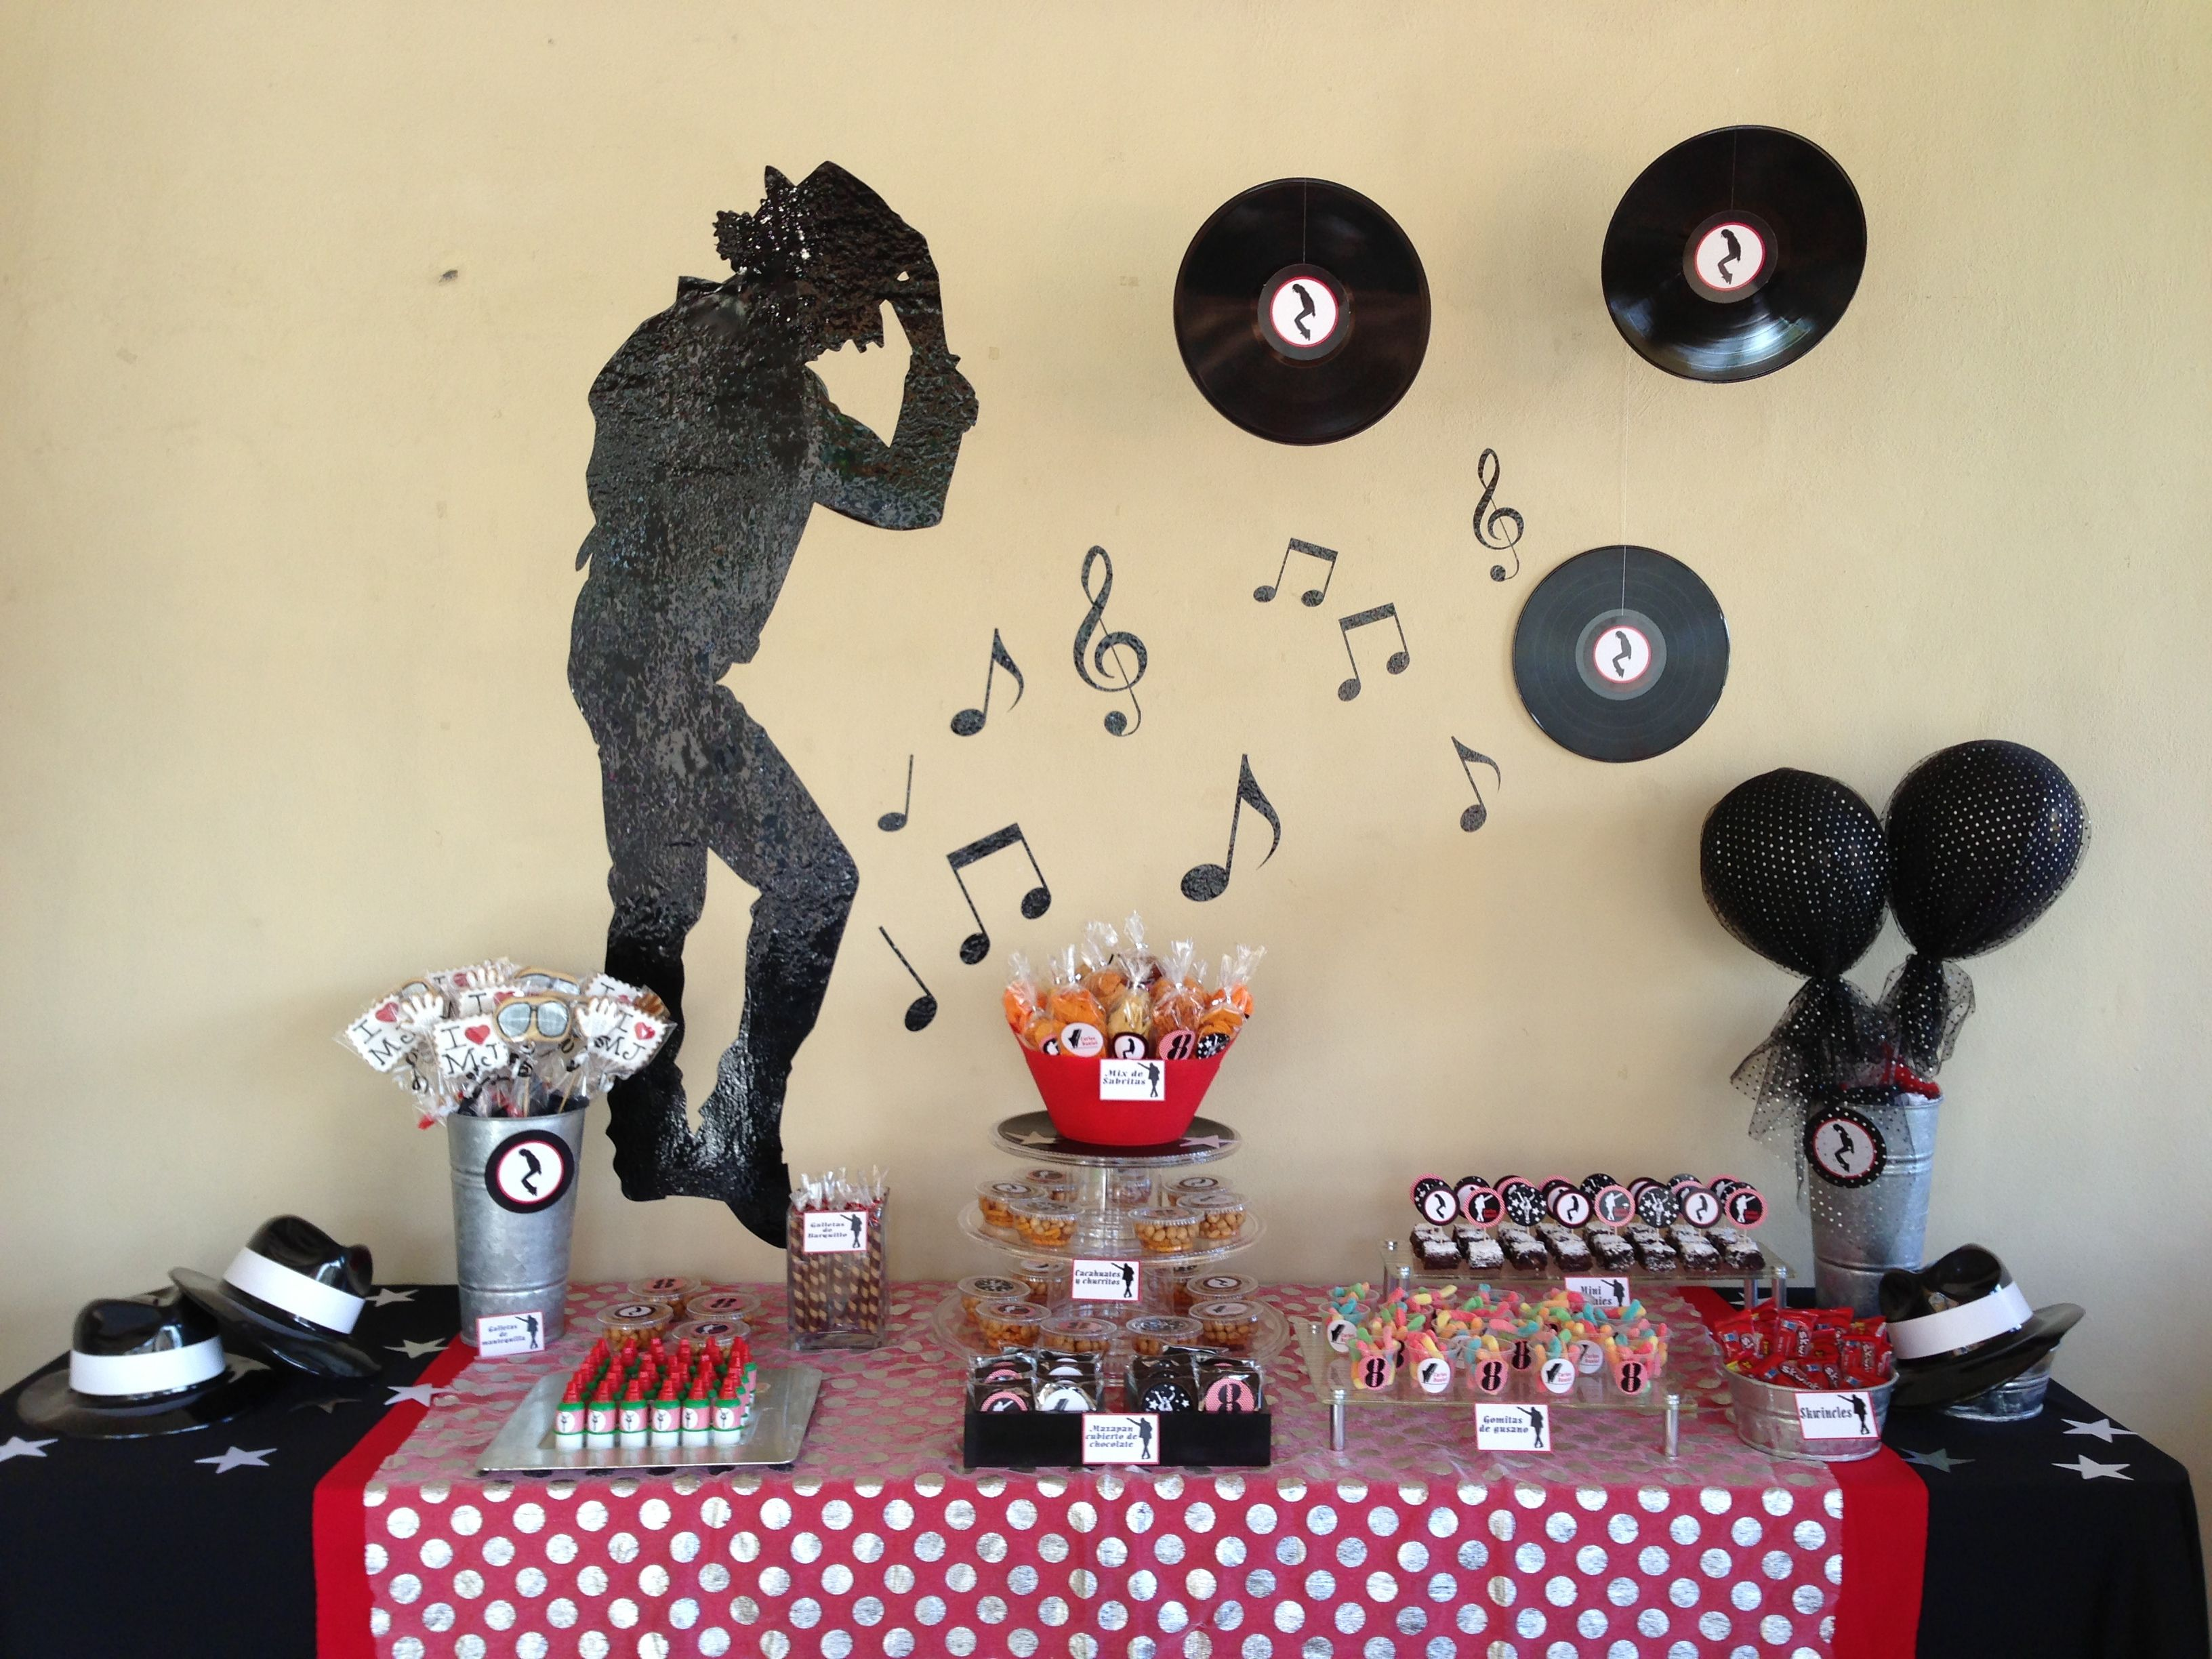 Best 25+ Michael jackson party ideas on Pinterest | Michael ...